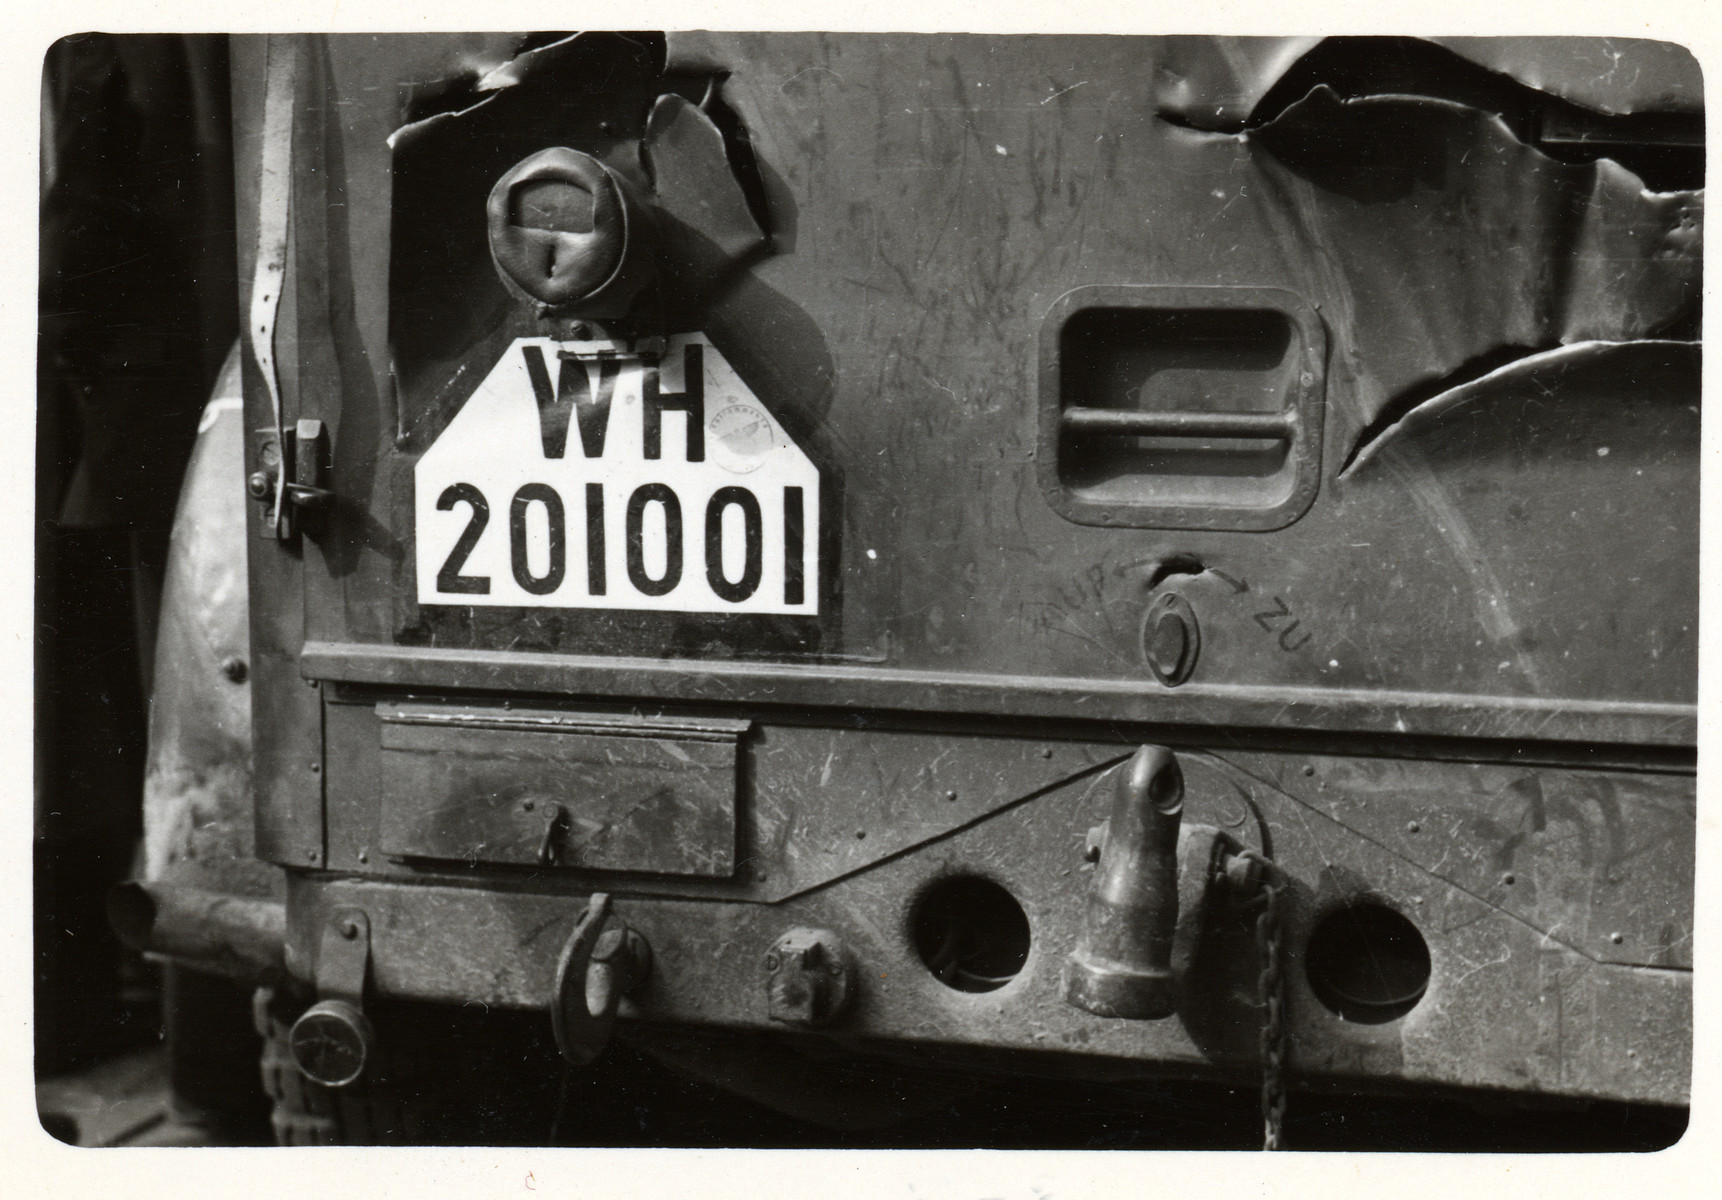 A close-up of the license plate of a military vehicle.